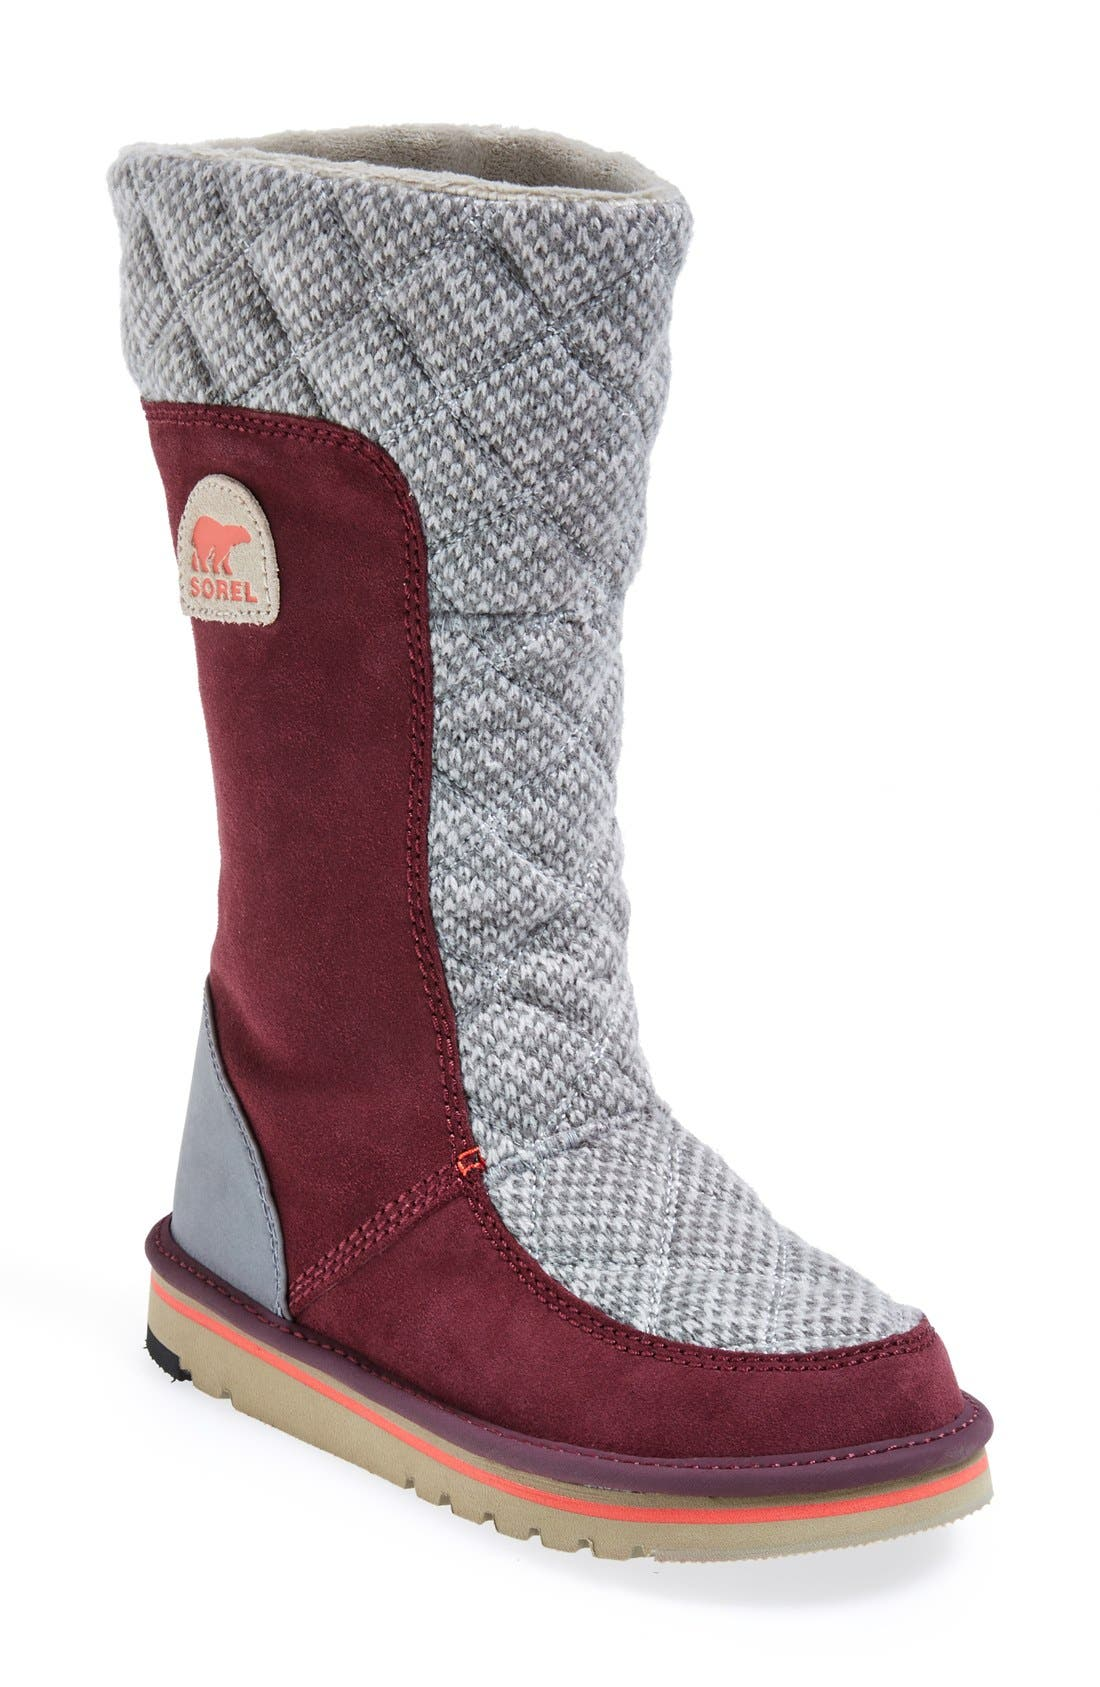 Alternate Image 1 Selected - SOREL 'Campus' Water Resistant Tall Boot (Women)